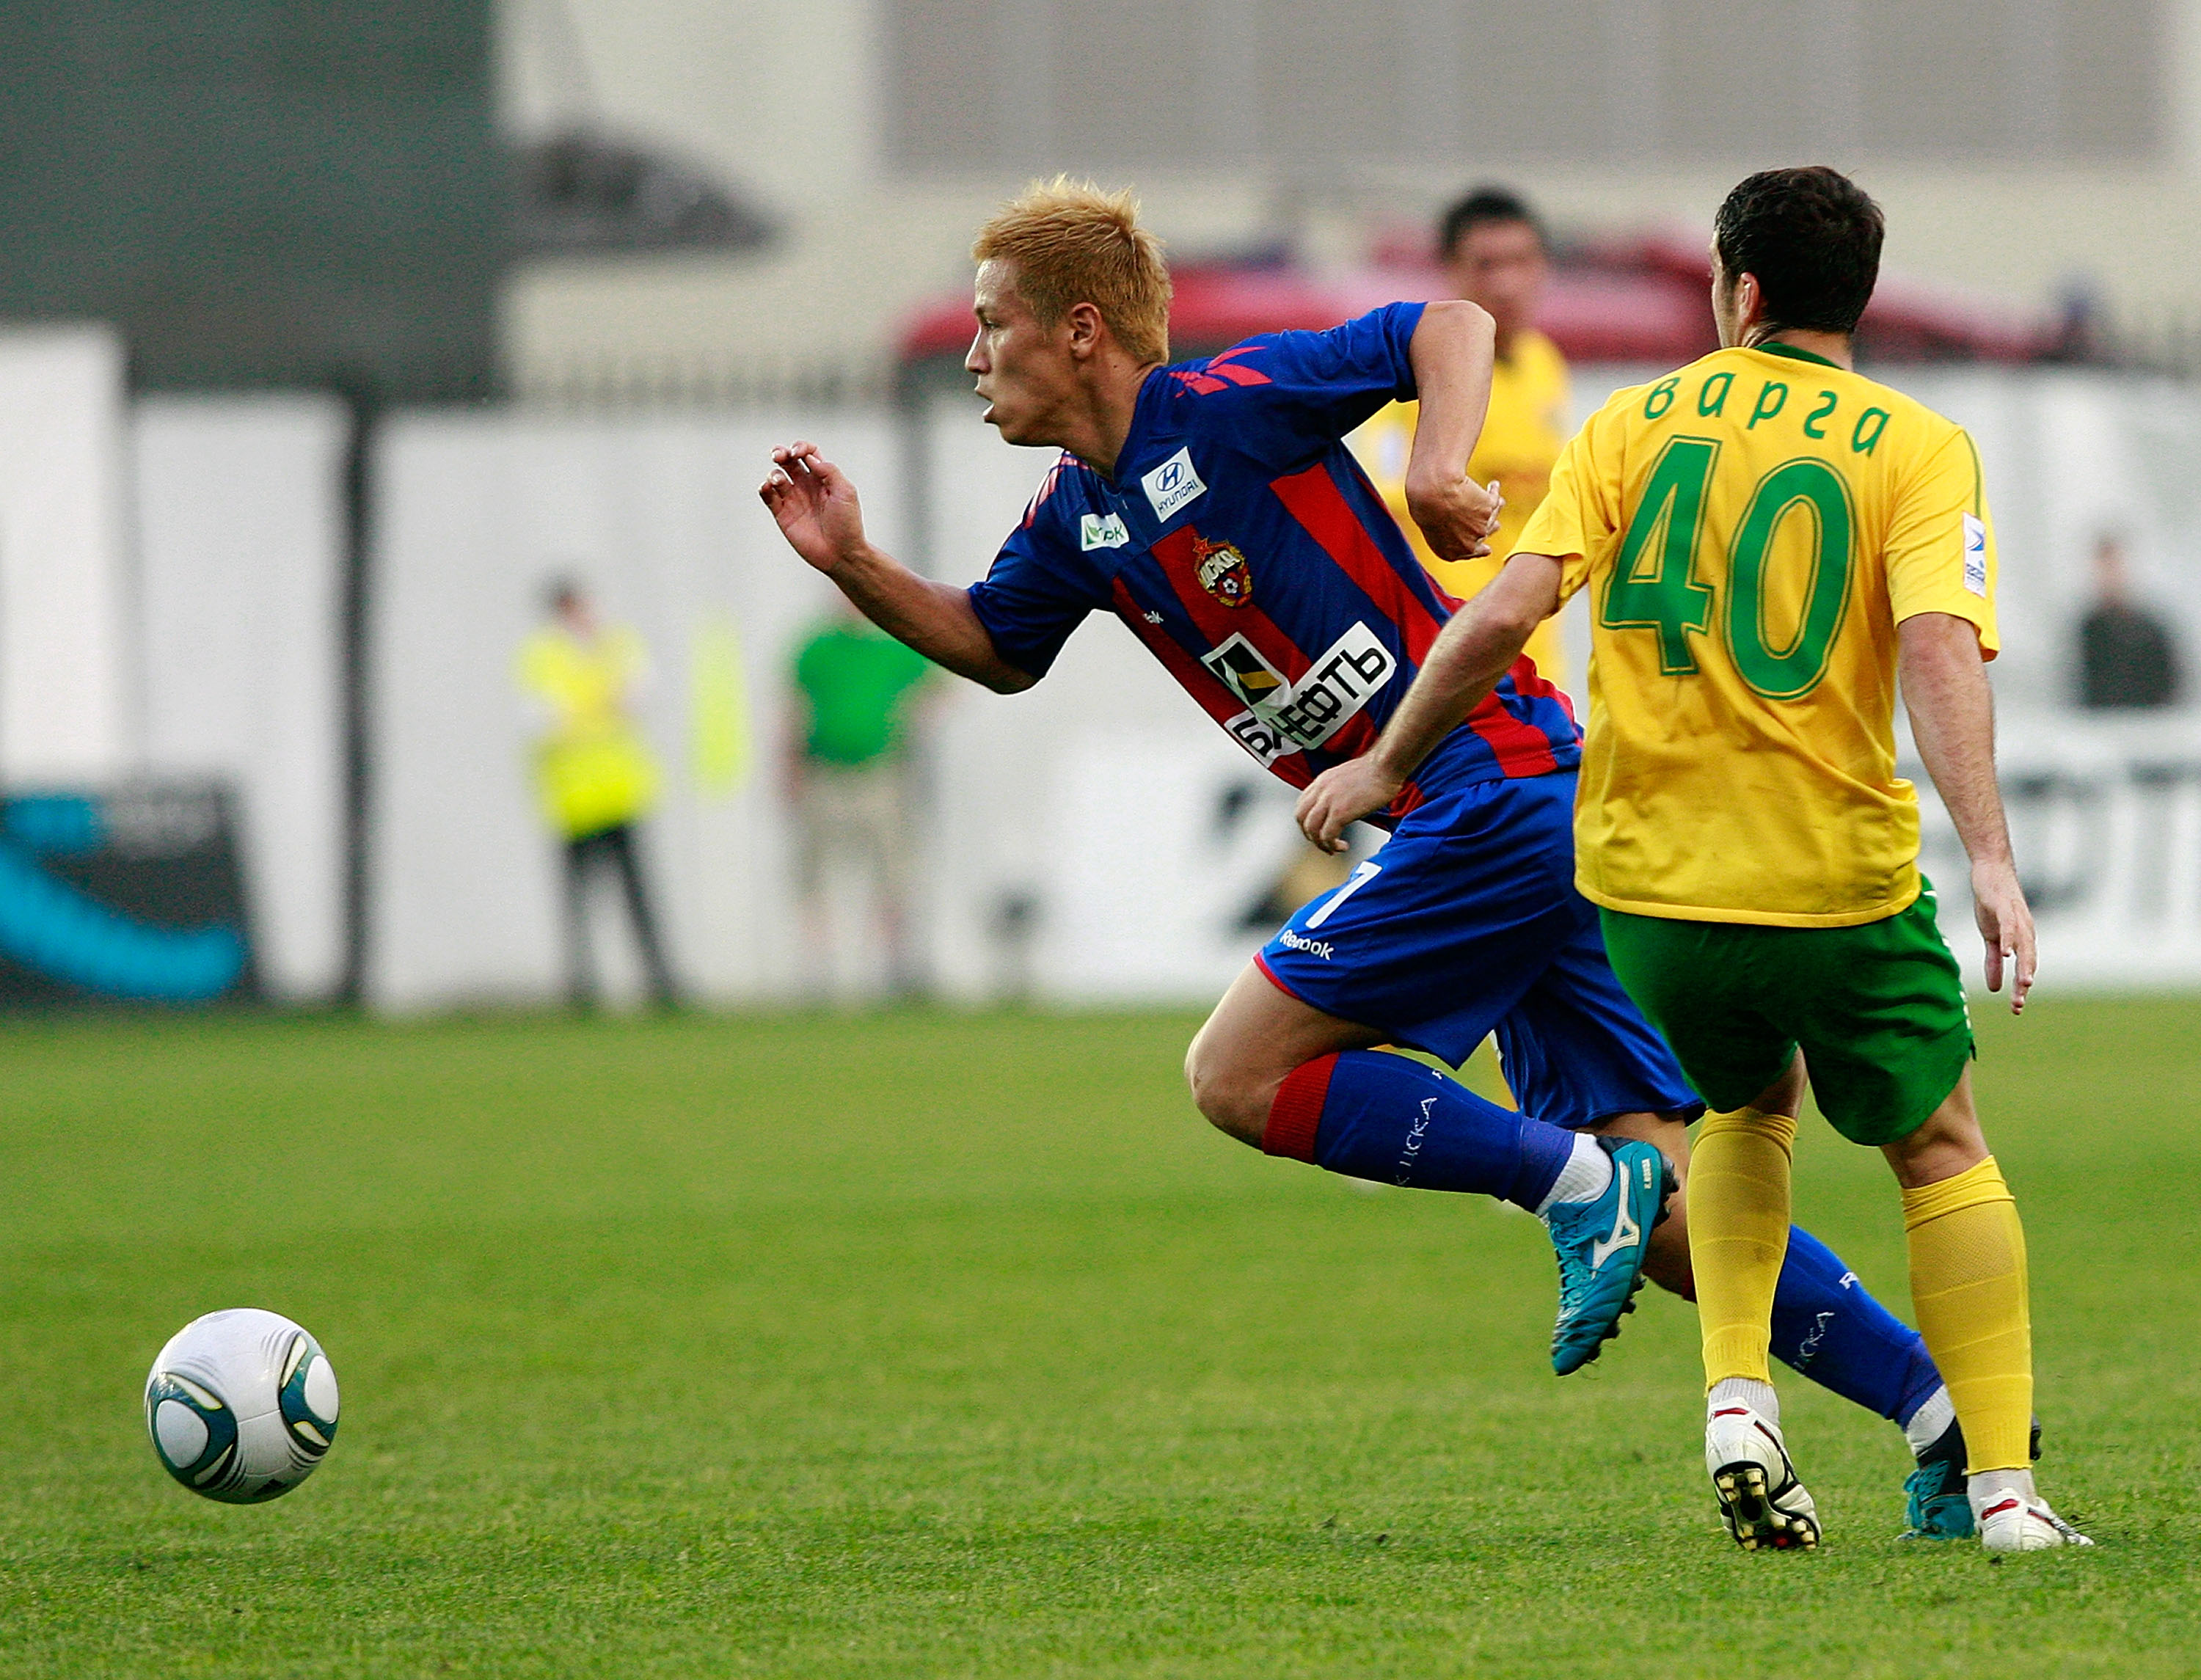 KHIMKI, RUSSIA - MAY 29: (EMBARGOED FOR PUBLICATION IN ALL JAPANESE MEDIA UNTIL 48 HOURS AFTER CREATE DATE AND TIME) Keisuke Honda of PFC CSKA Moscow in action during the Russian Football League Championship match between PFC CSKA Moscow and FC Kuban Kras